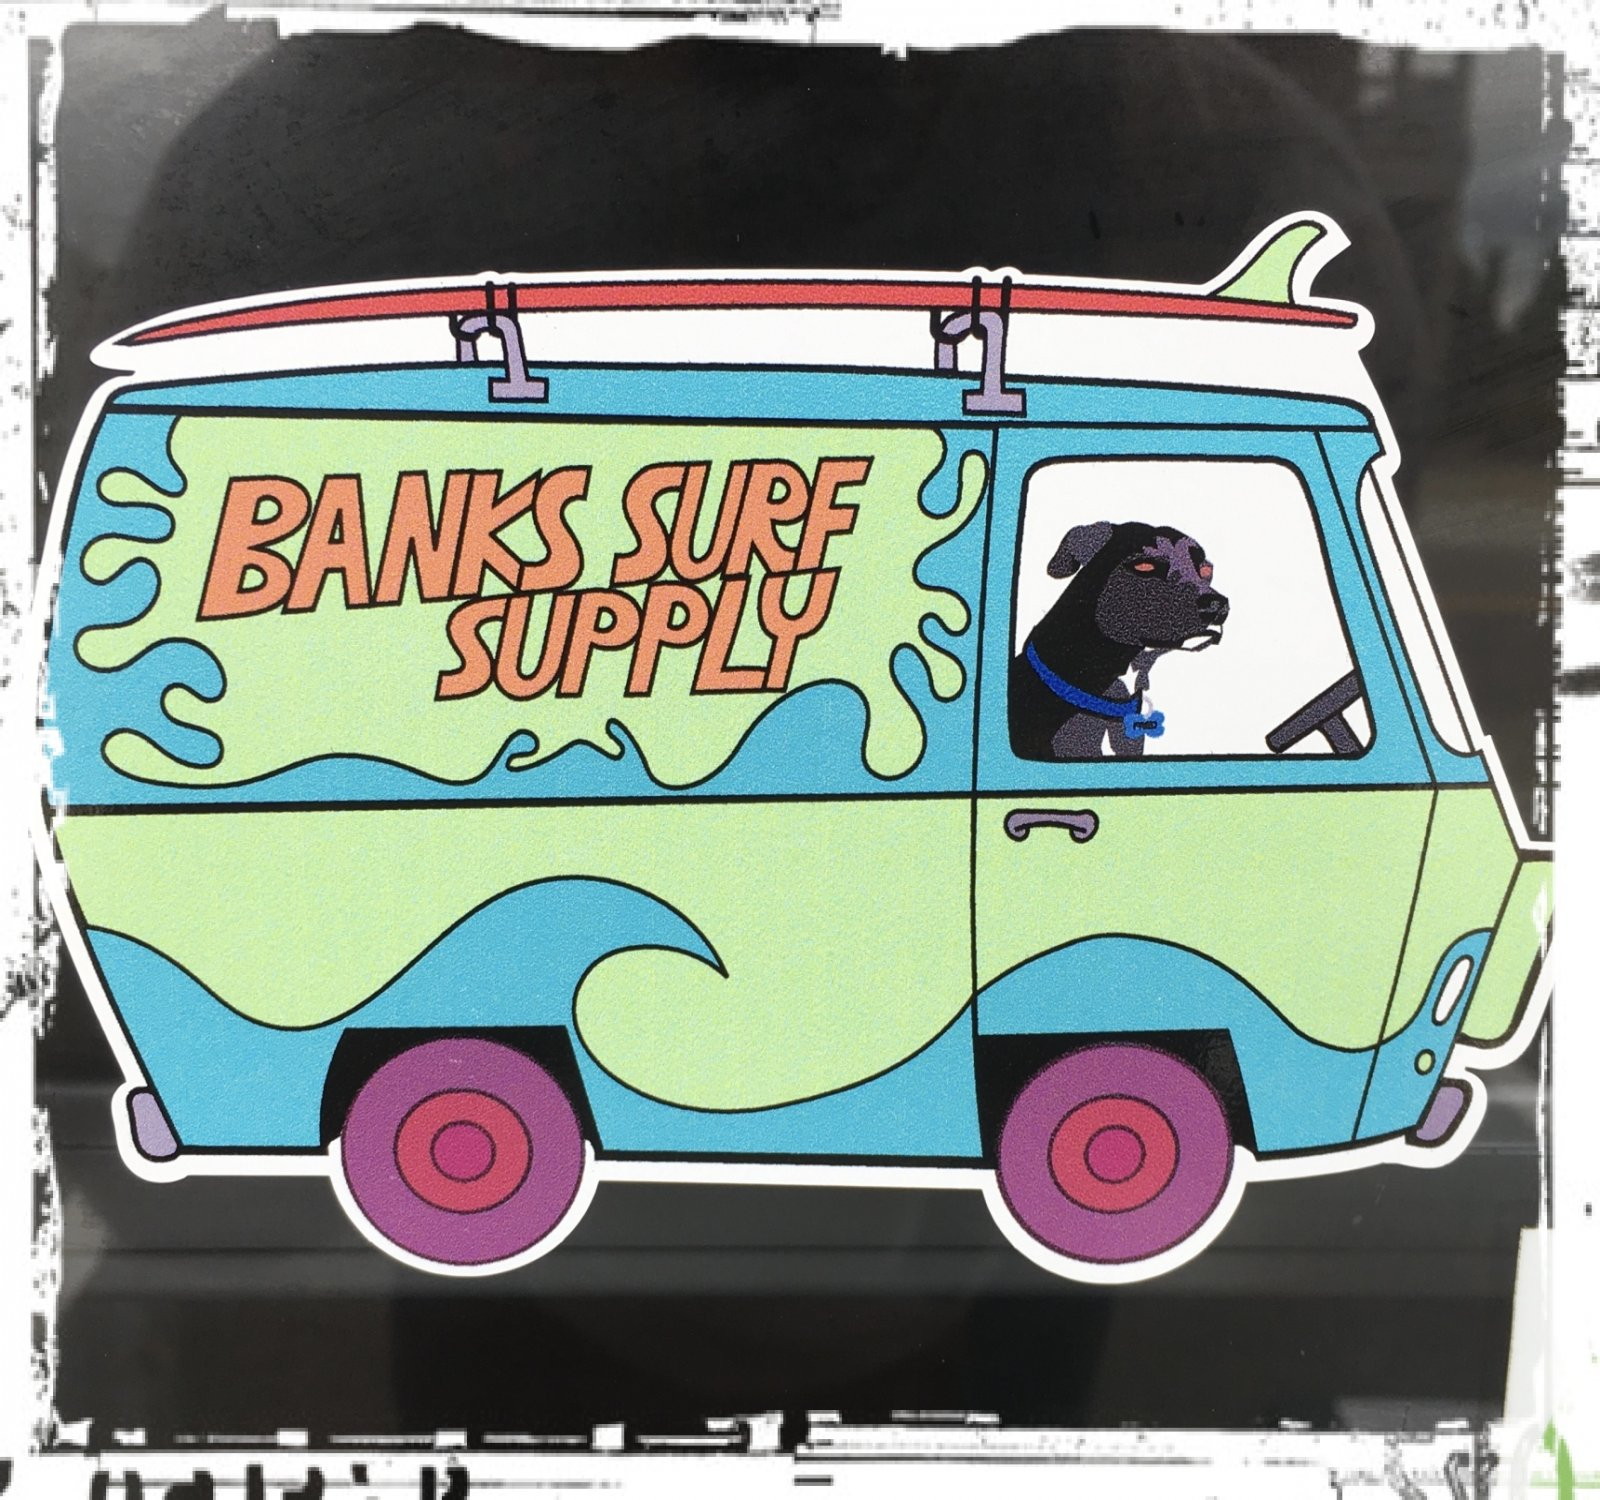 Manager Fred: Banks Surf Supply